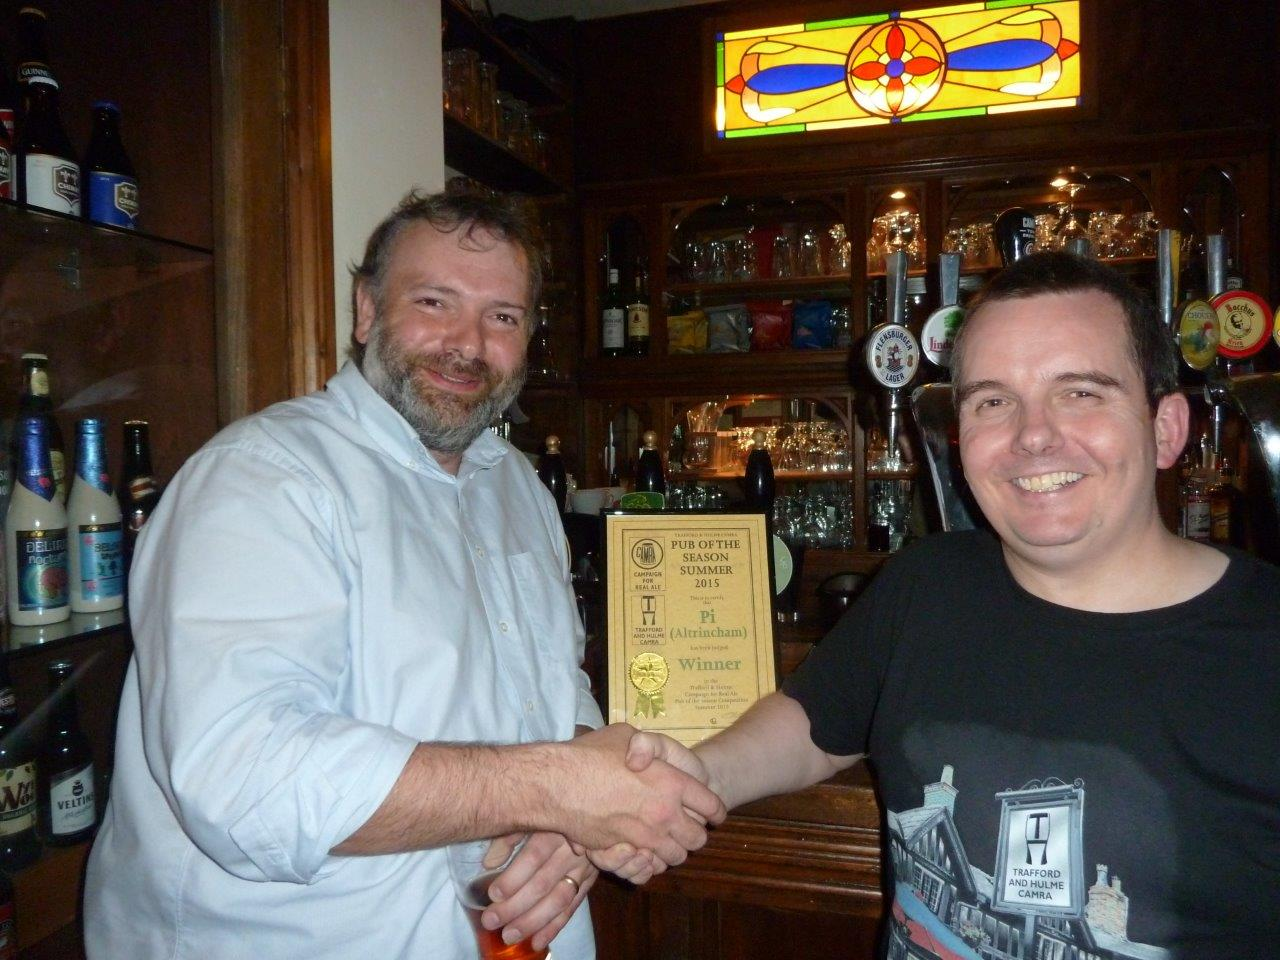 Andy Receiving the presentation from John